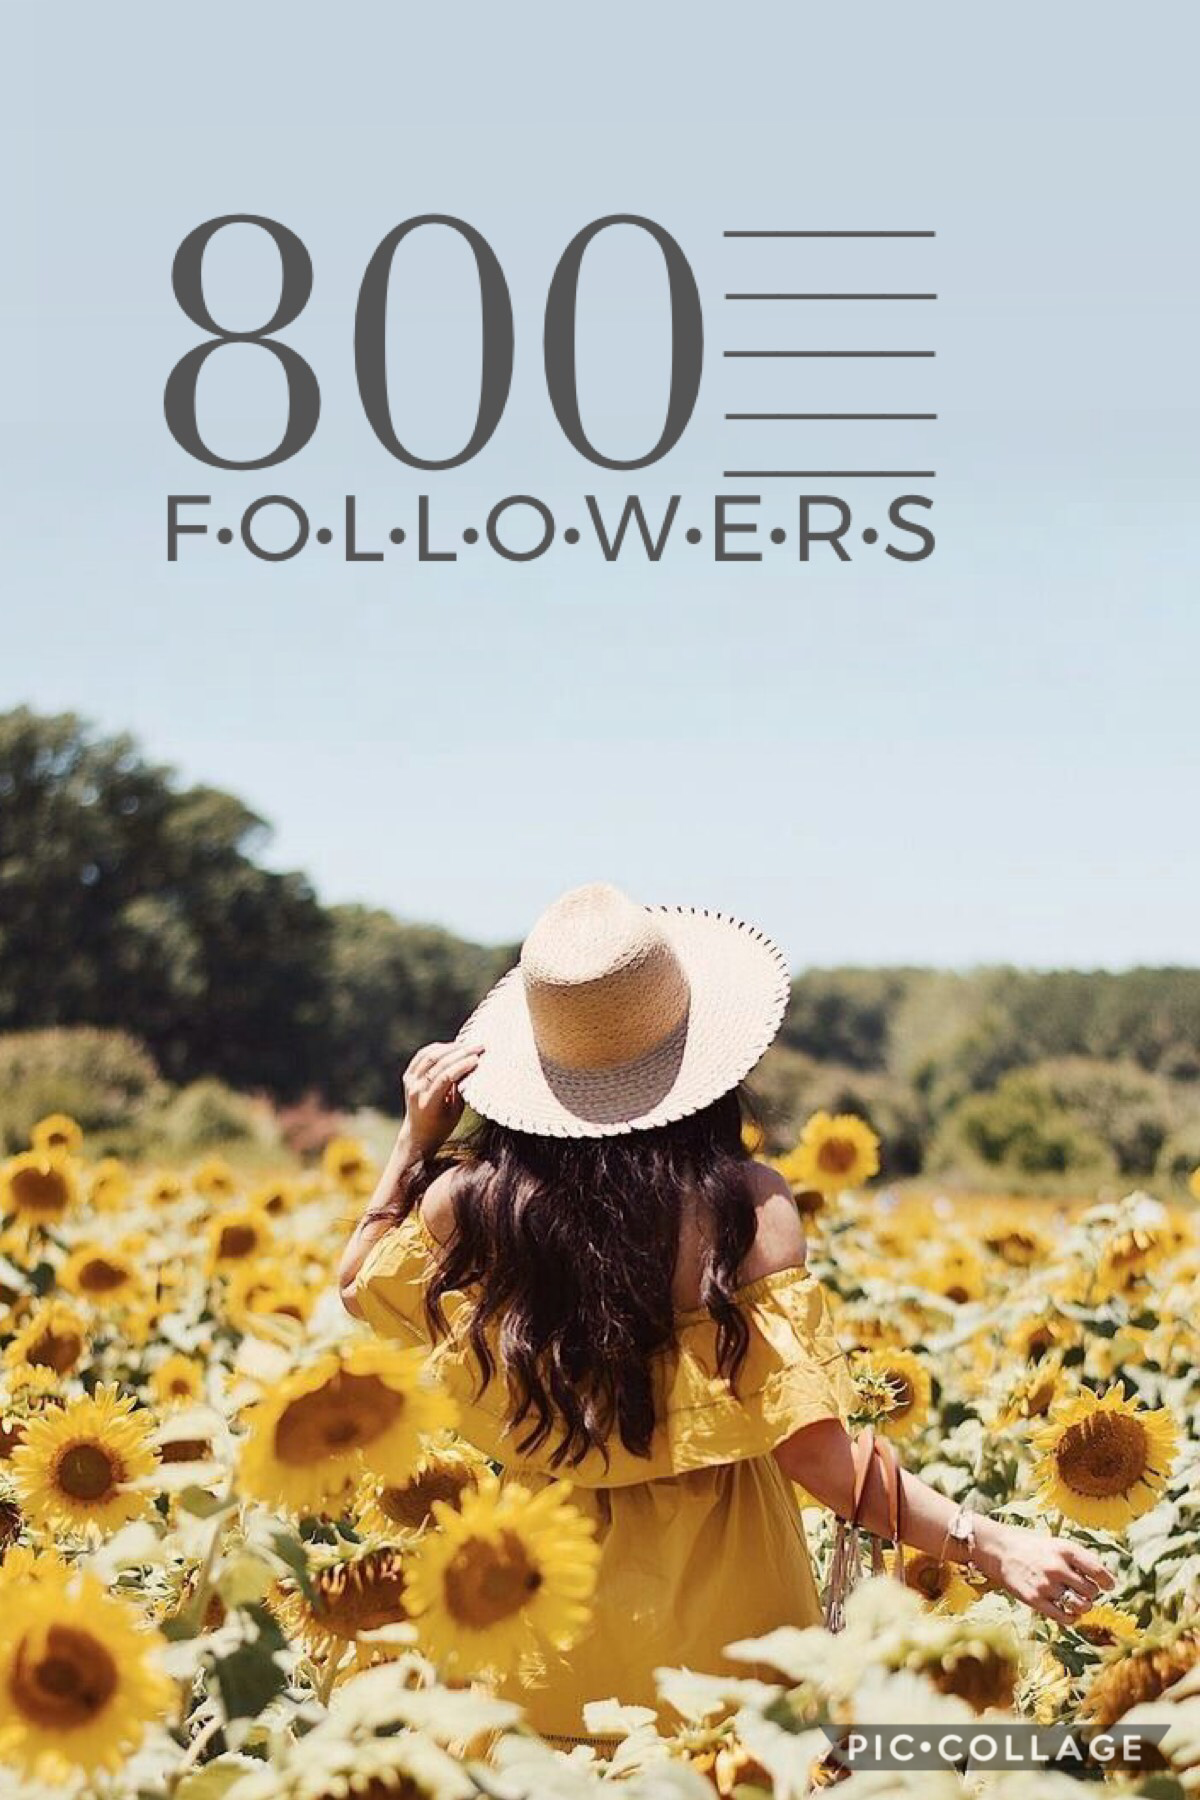 wowowow what?!? 800 followers?!?!?!? tysm!!!! i couldn't have made it this far without all of your love and support ❤️ 💕 ilyasm 💕